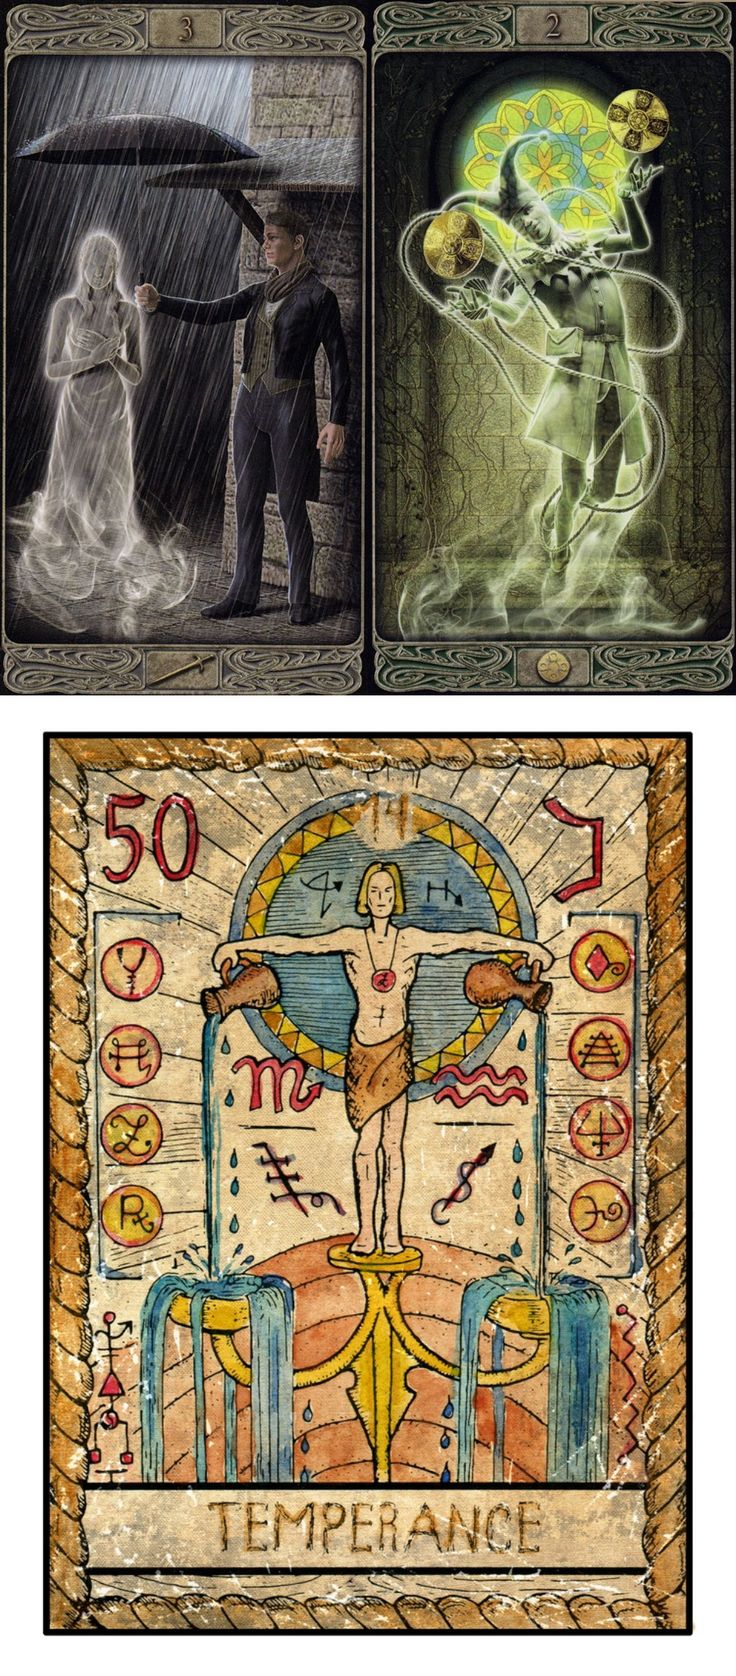 free online tarot card reading lotus, how to read tarot cards and how to play tarot cards, online tarot spread and free physic reading online.